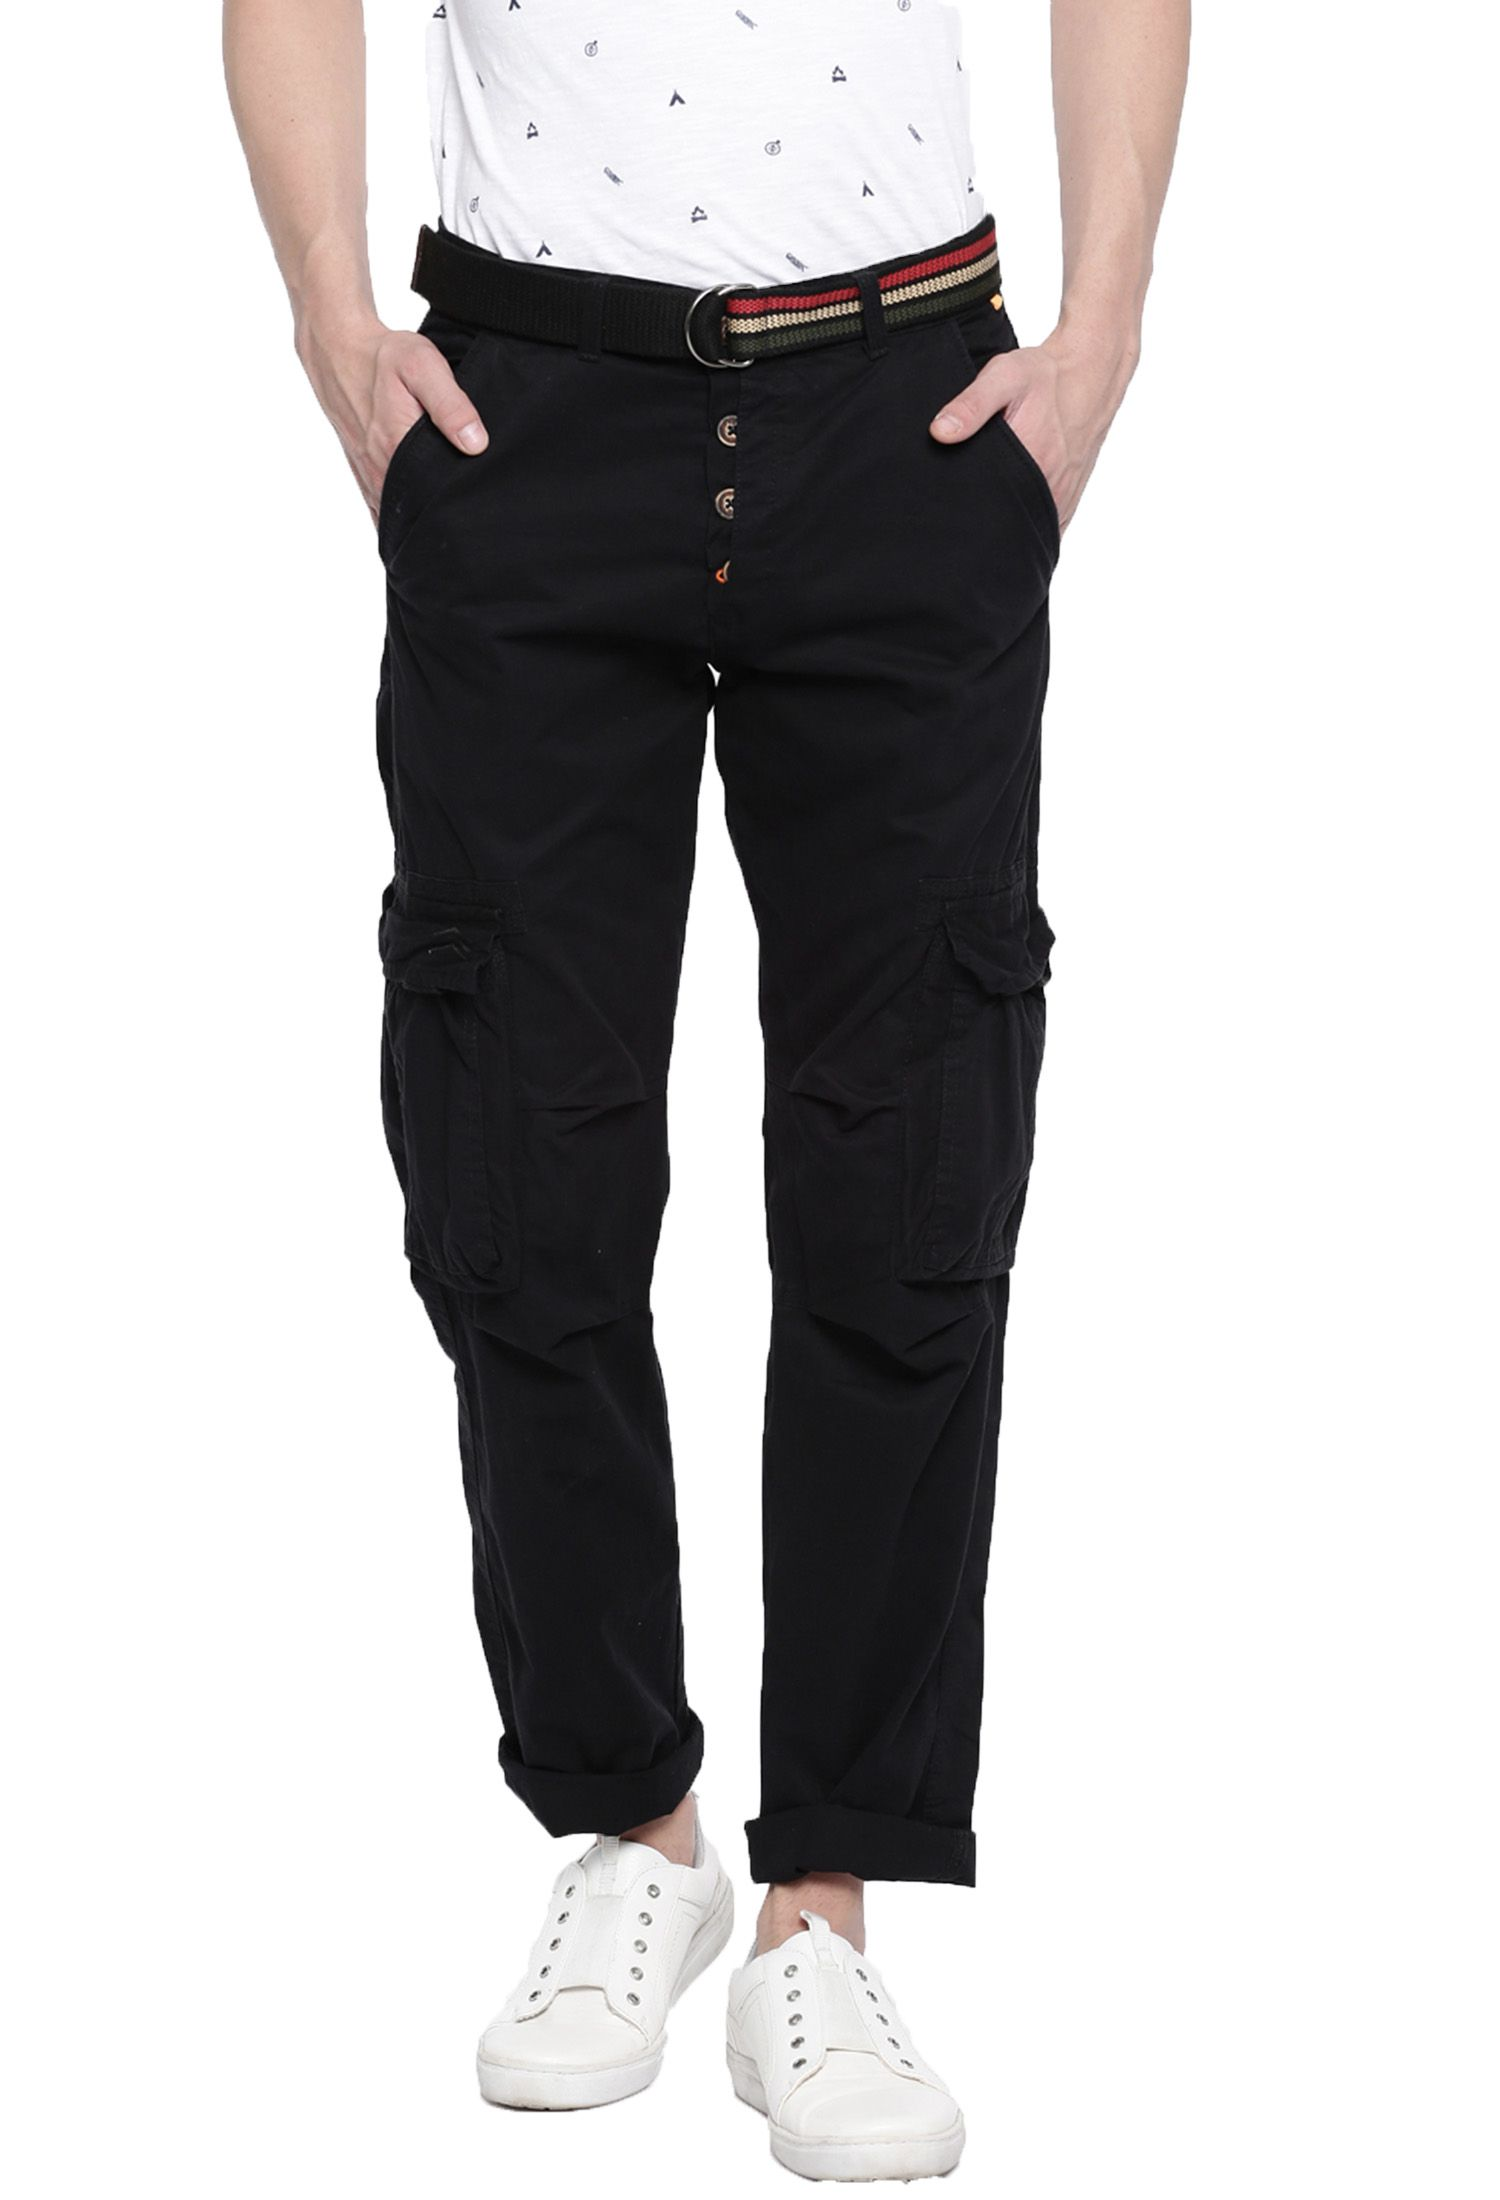 FIFTY TWO Black Regular -Fit Flat Cargos